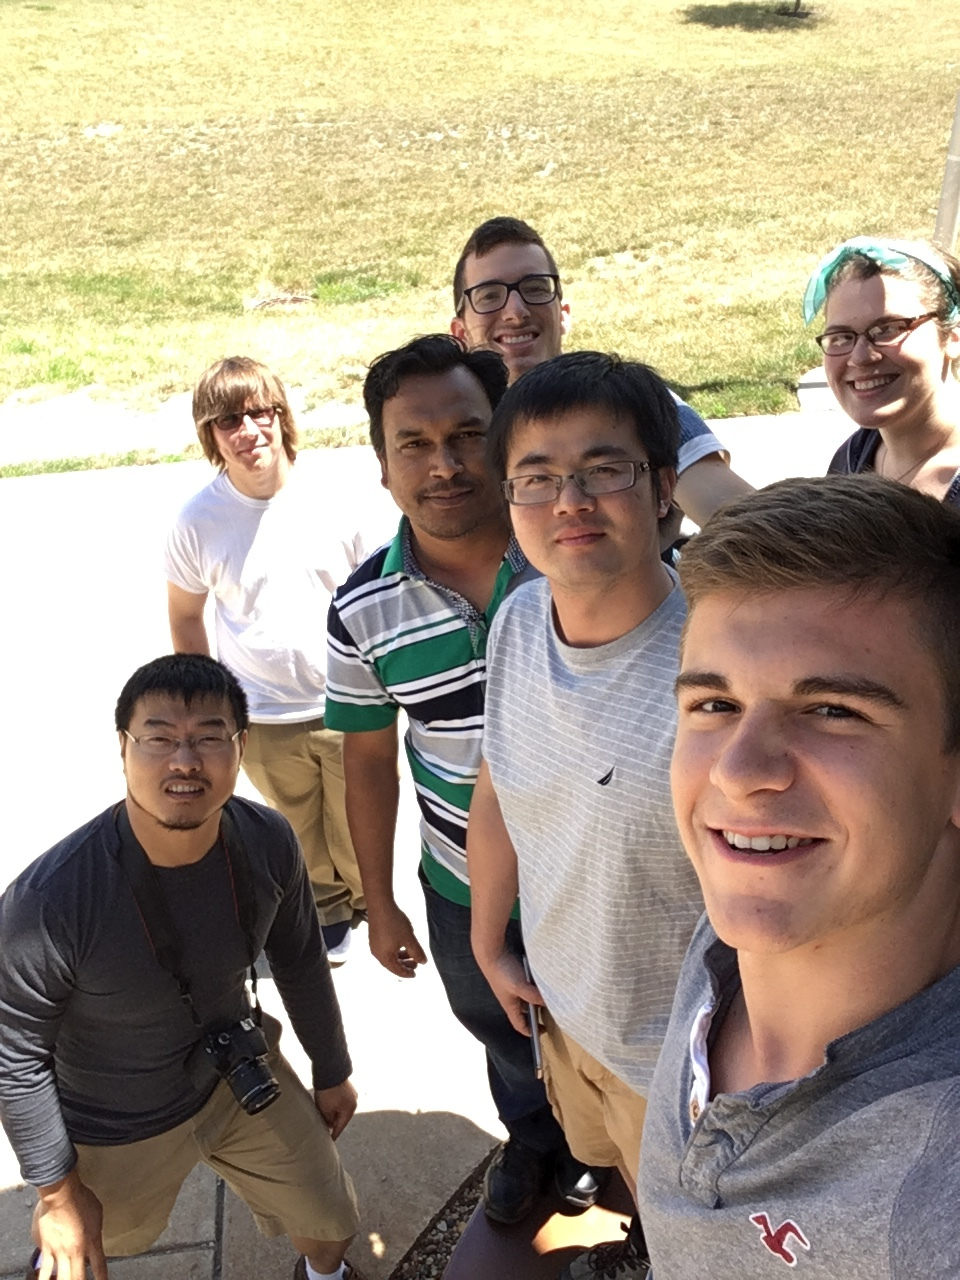 Group Selfie - Summer 2016